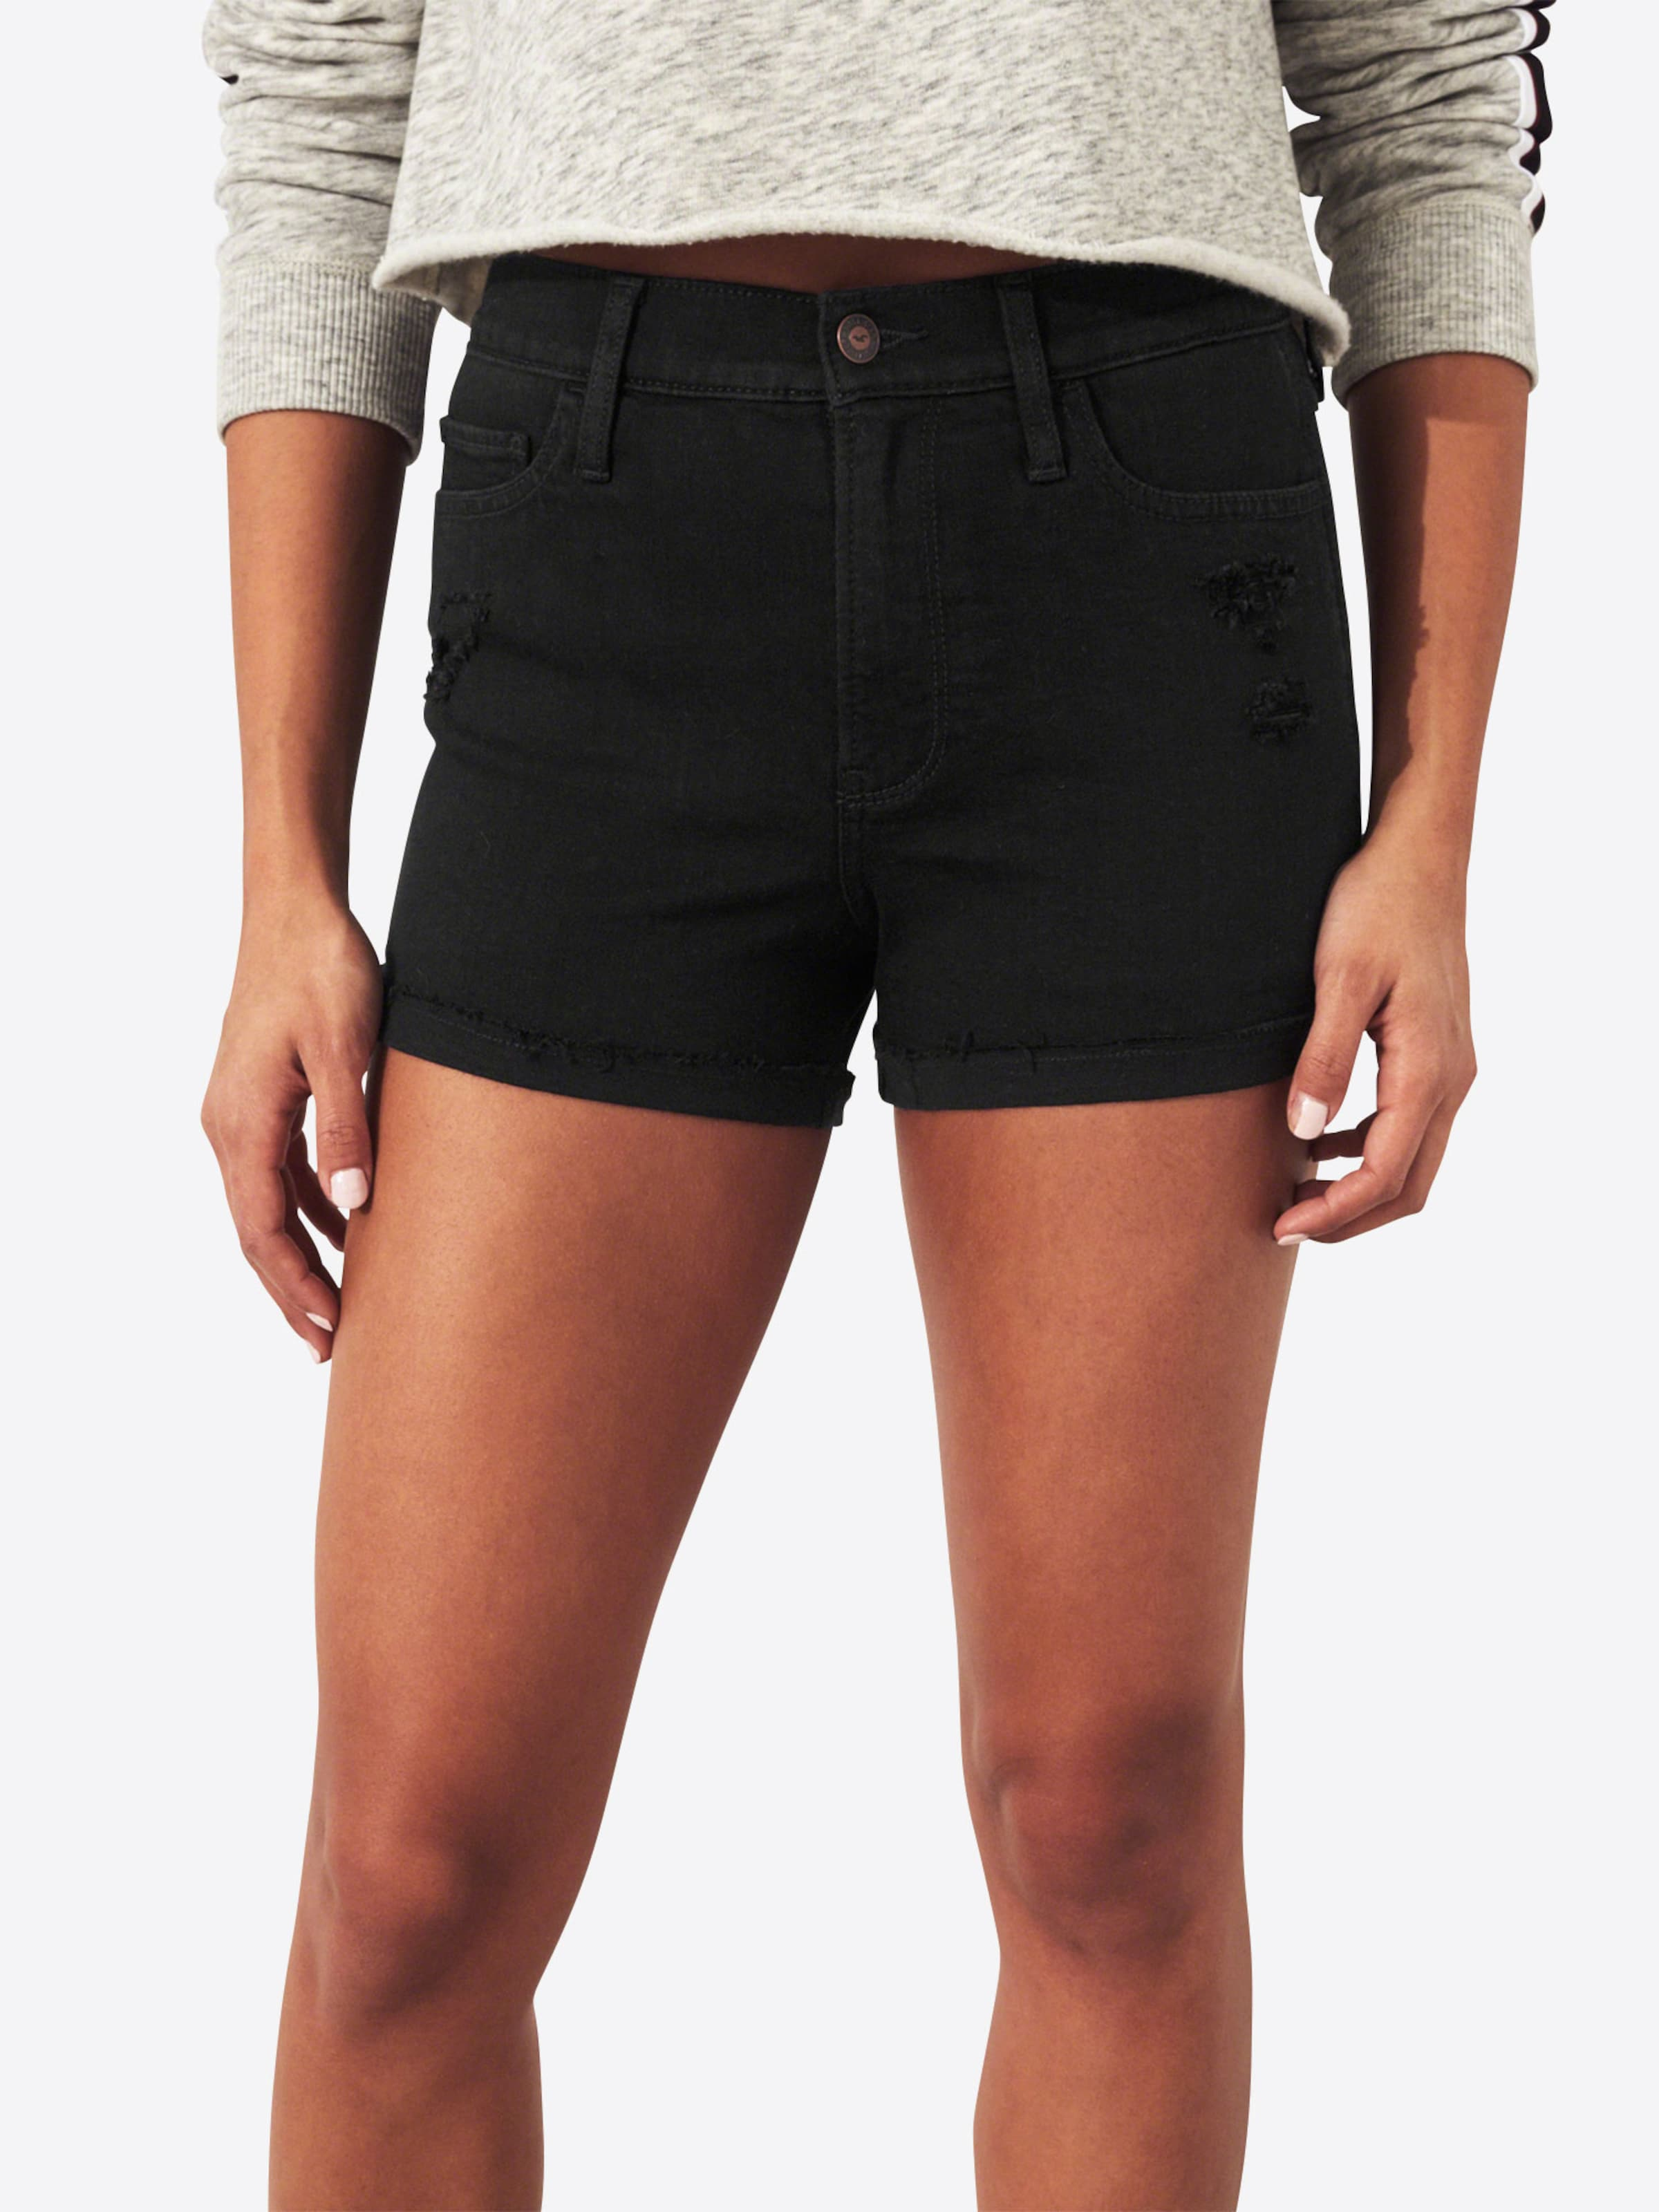 3 Denim Black black Jeans 'sb19 In As Rcc Hollister Short' Dst Hr VzSUMGpLq